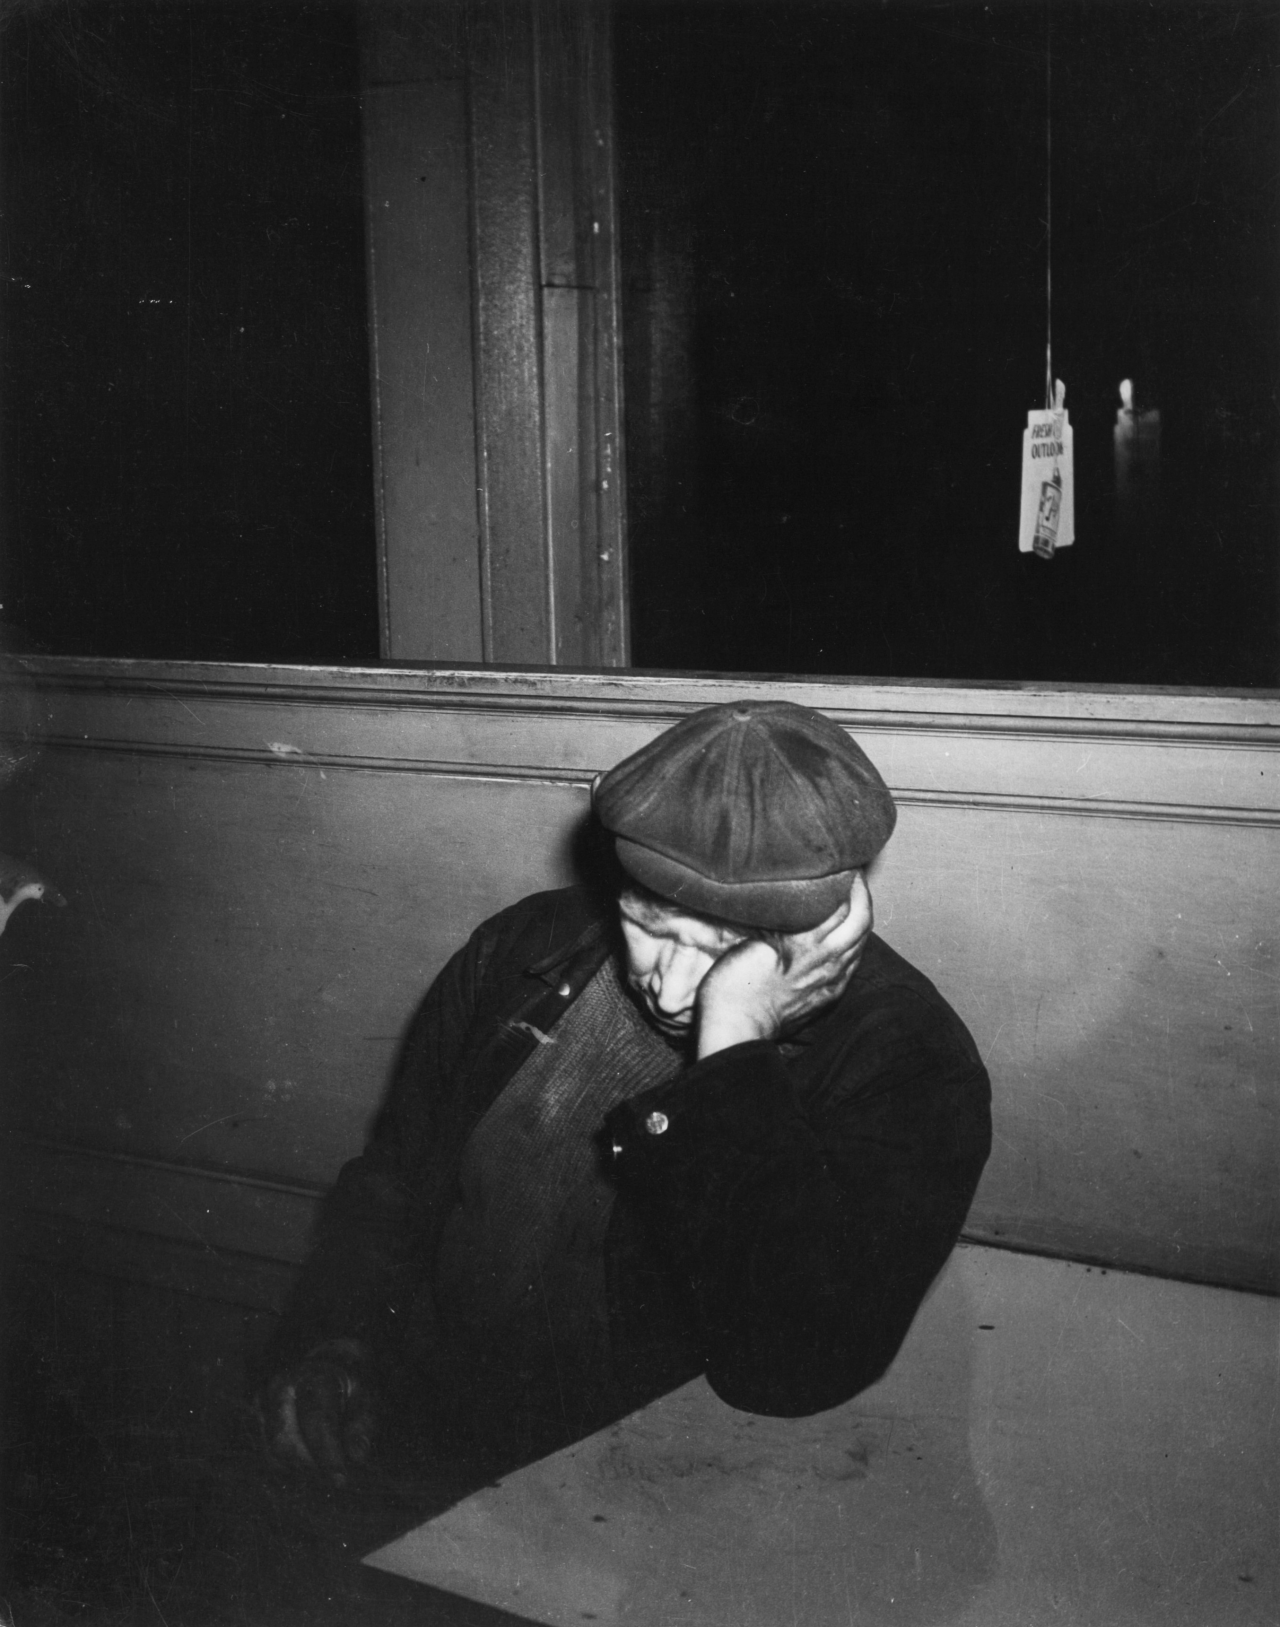 Weegee: Sleeping at the Bar, 1939